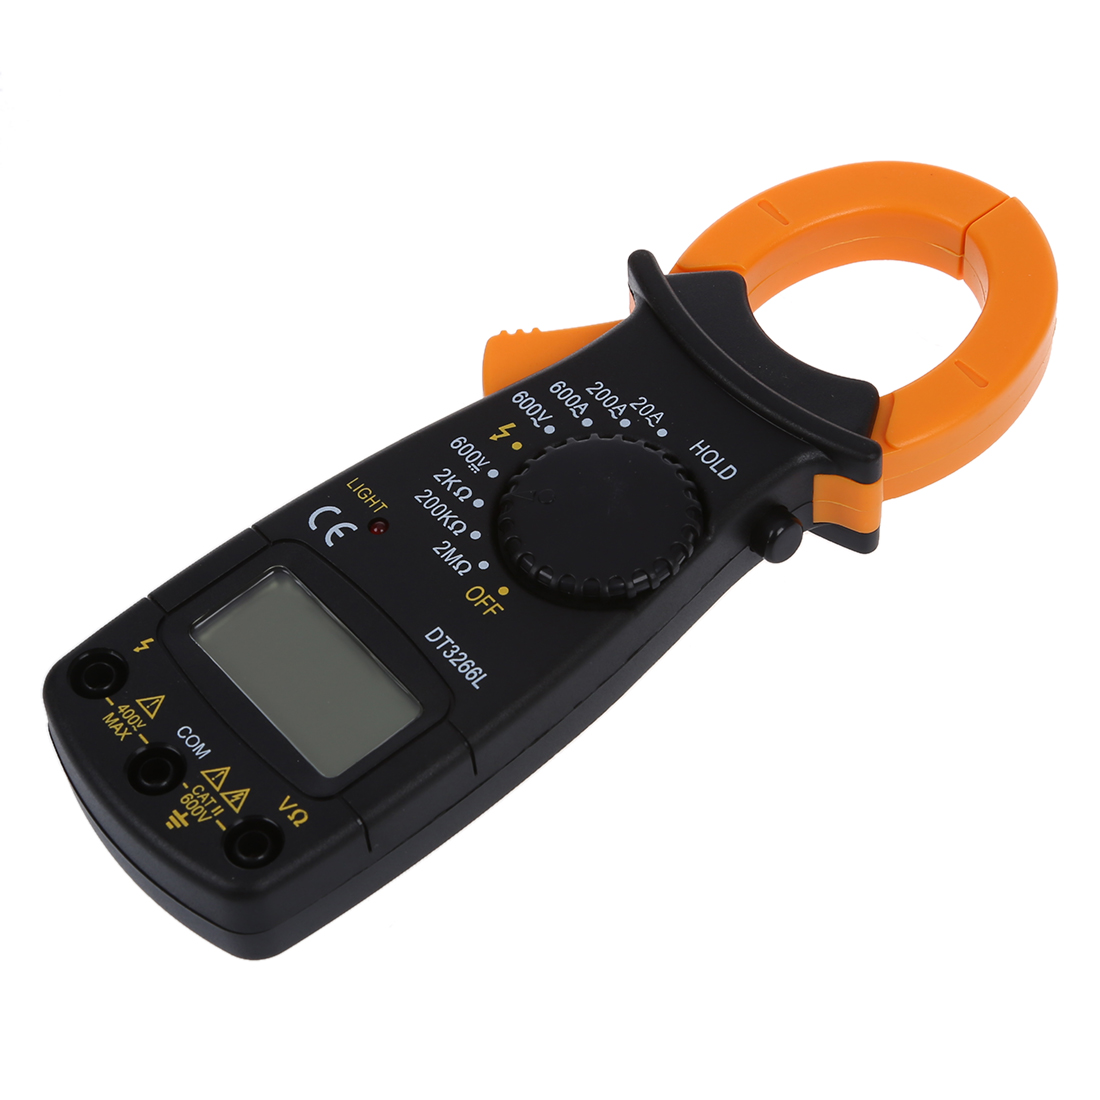 Ac Dc Clamp Meter : Ac dc digital electronic tester clamp meter multimeter